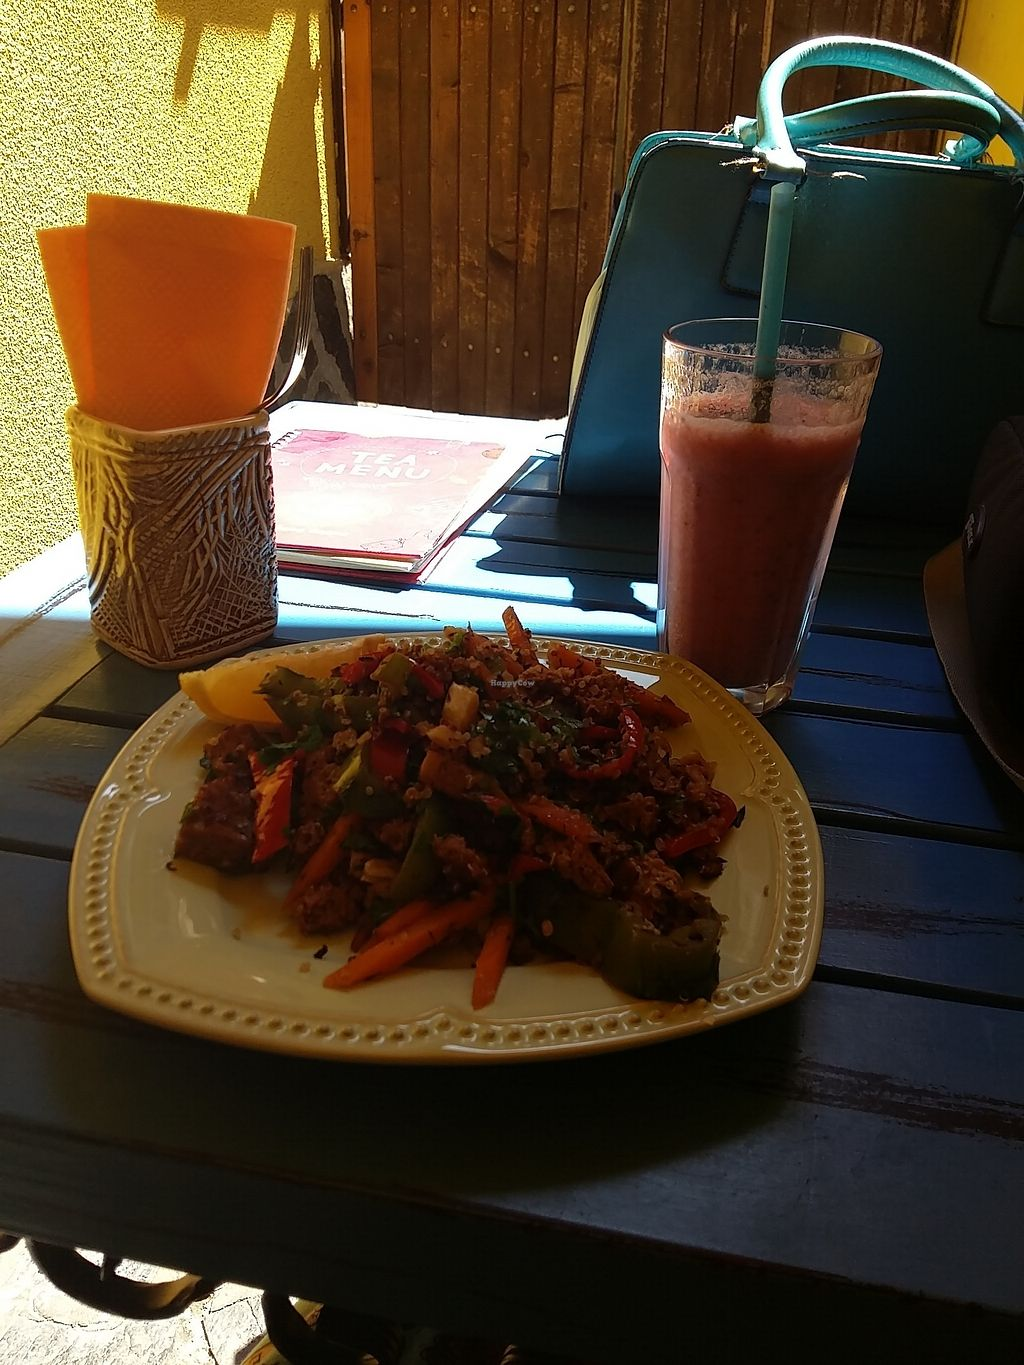 "Photo of Veda House - Sofia  by <a href=""/members/profile/ninaframbuesa"">ninaframbuesa</a> <br/>Saitan with quinoa and veggies. Smoothie <br/> August 16, 2017  - <a href='/contact/abuse/image/24759/293352'>Report</a>"